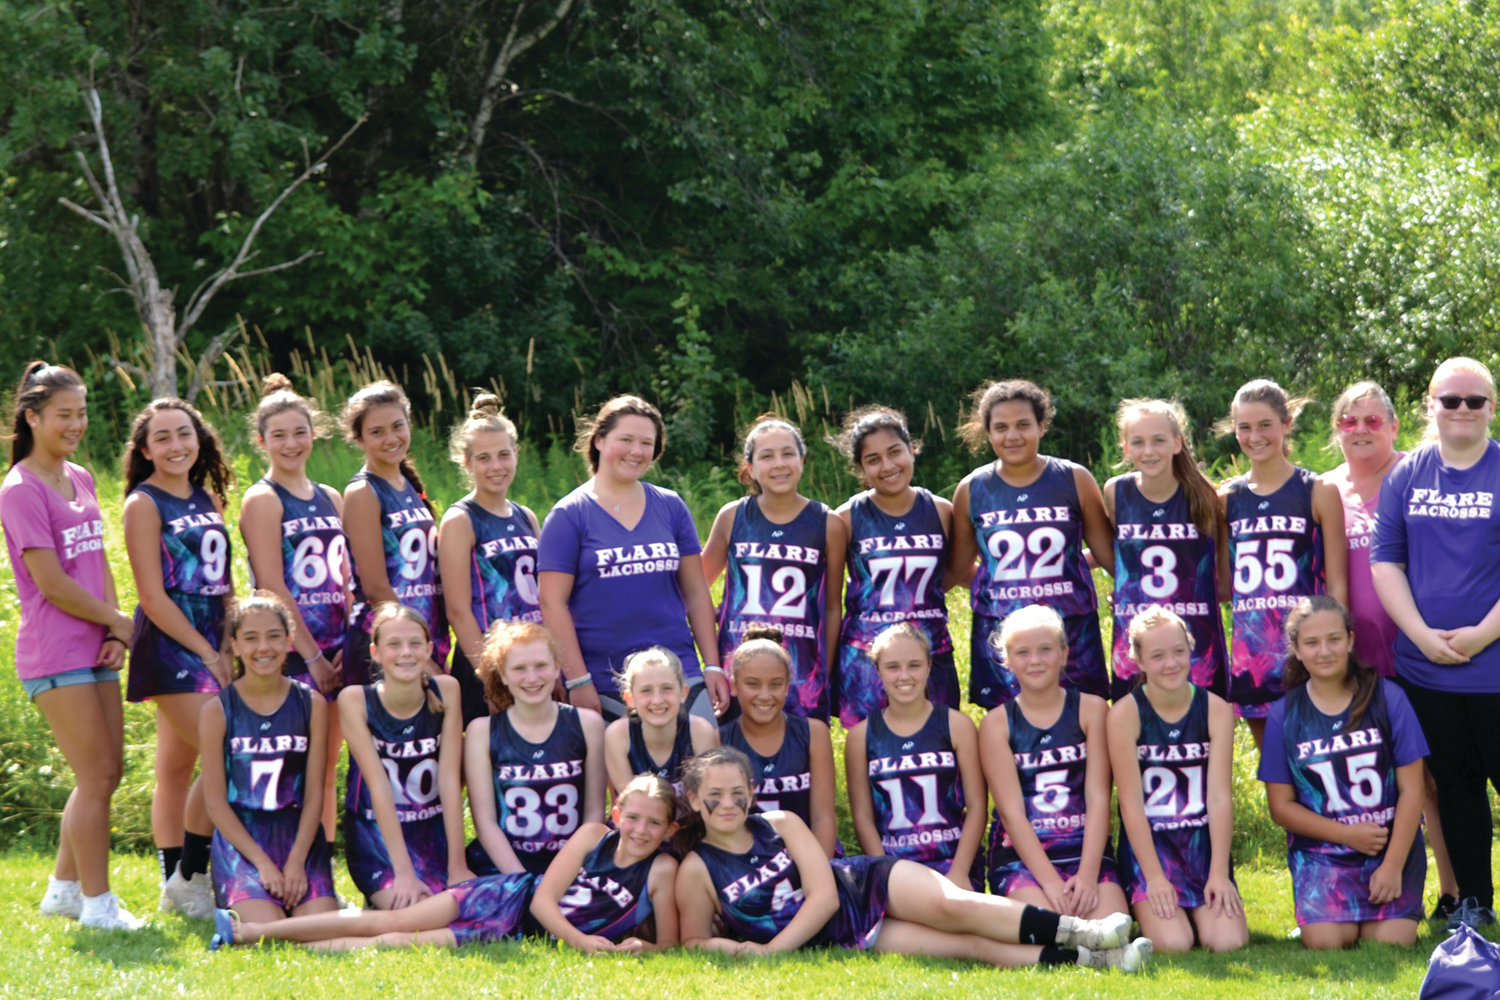 WITH FLARE: Members of the Flare Lacrosse team line up for a group photo. The program focuses on developing girls as players and leaders.